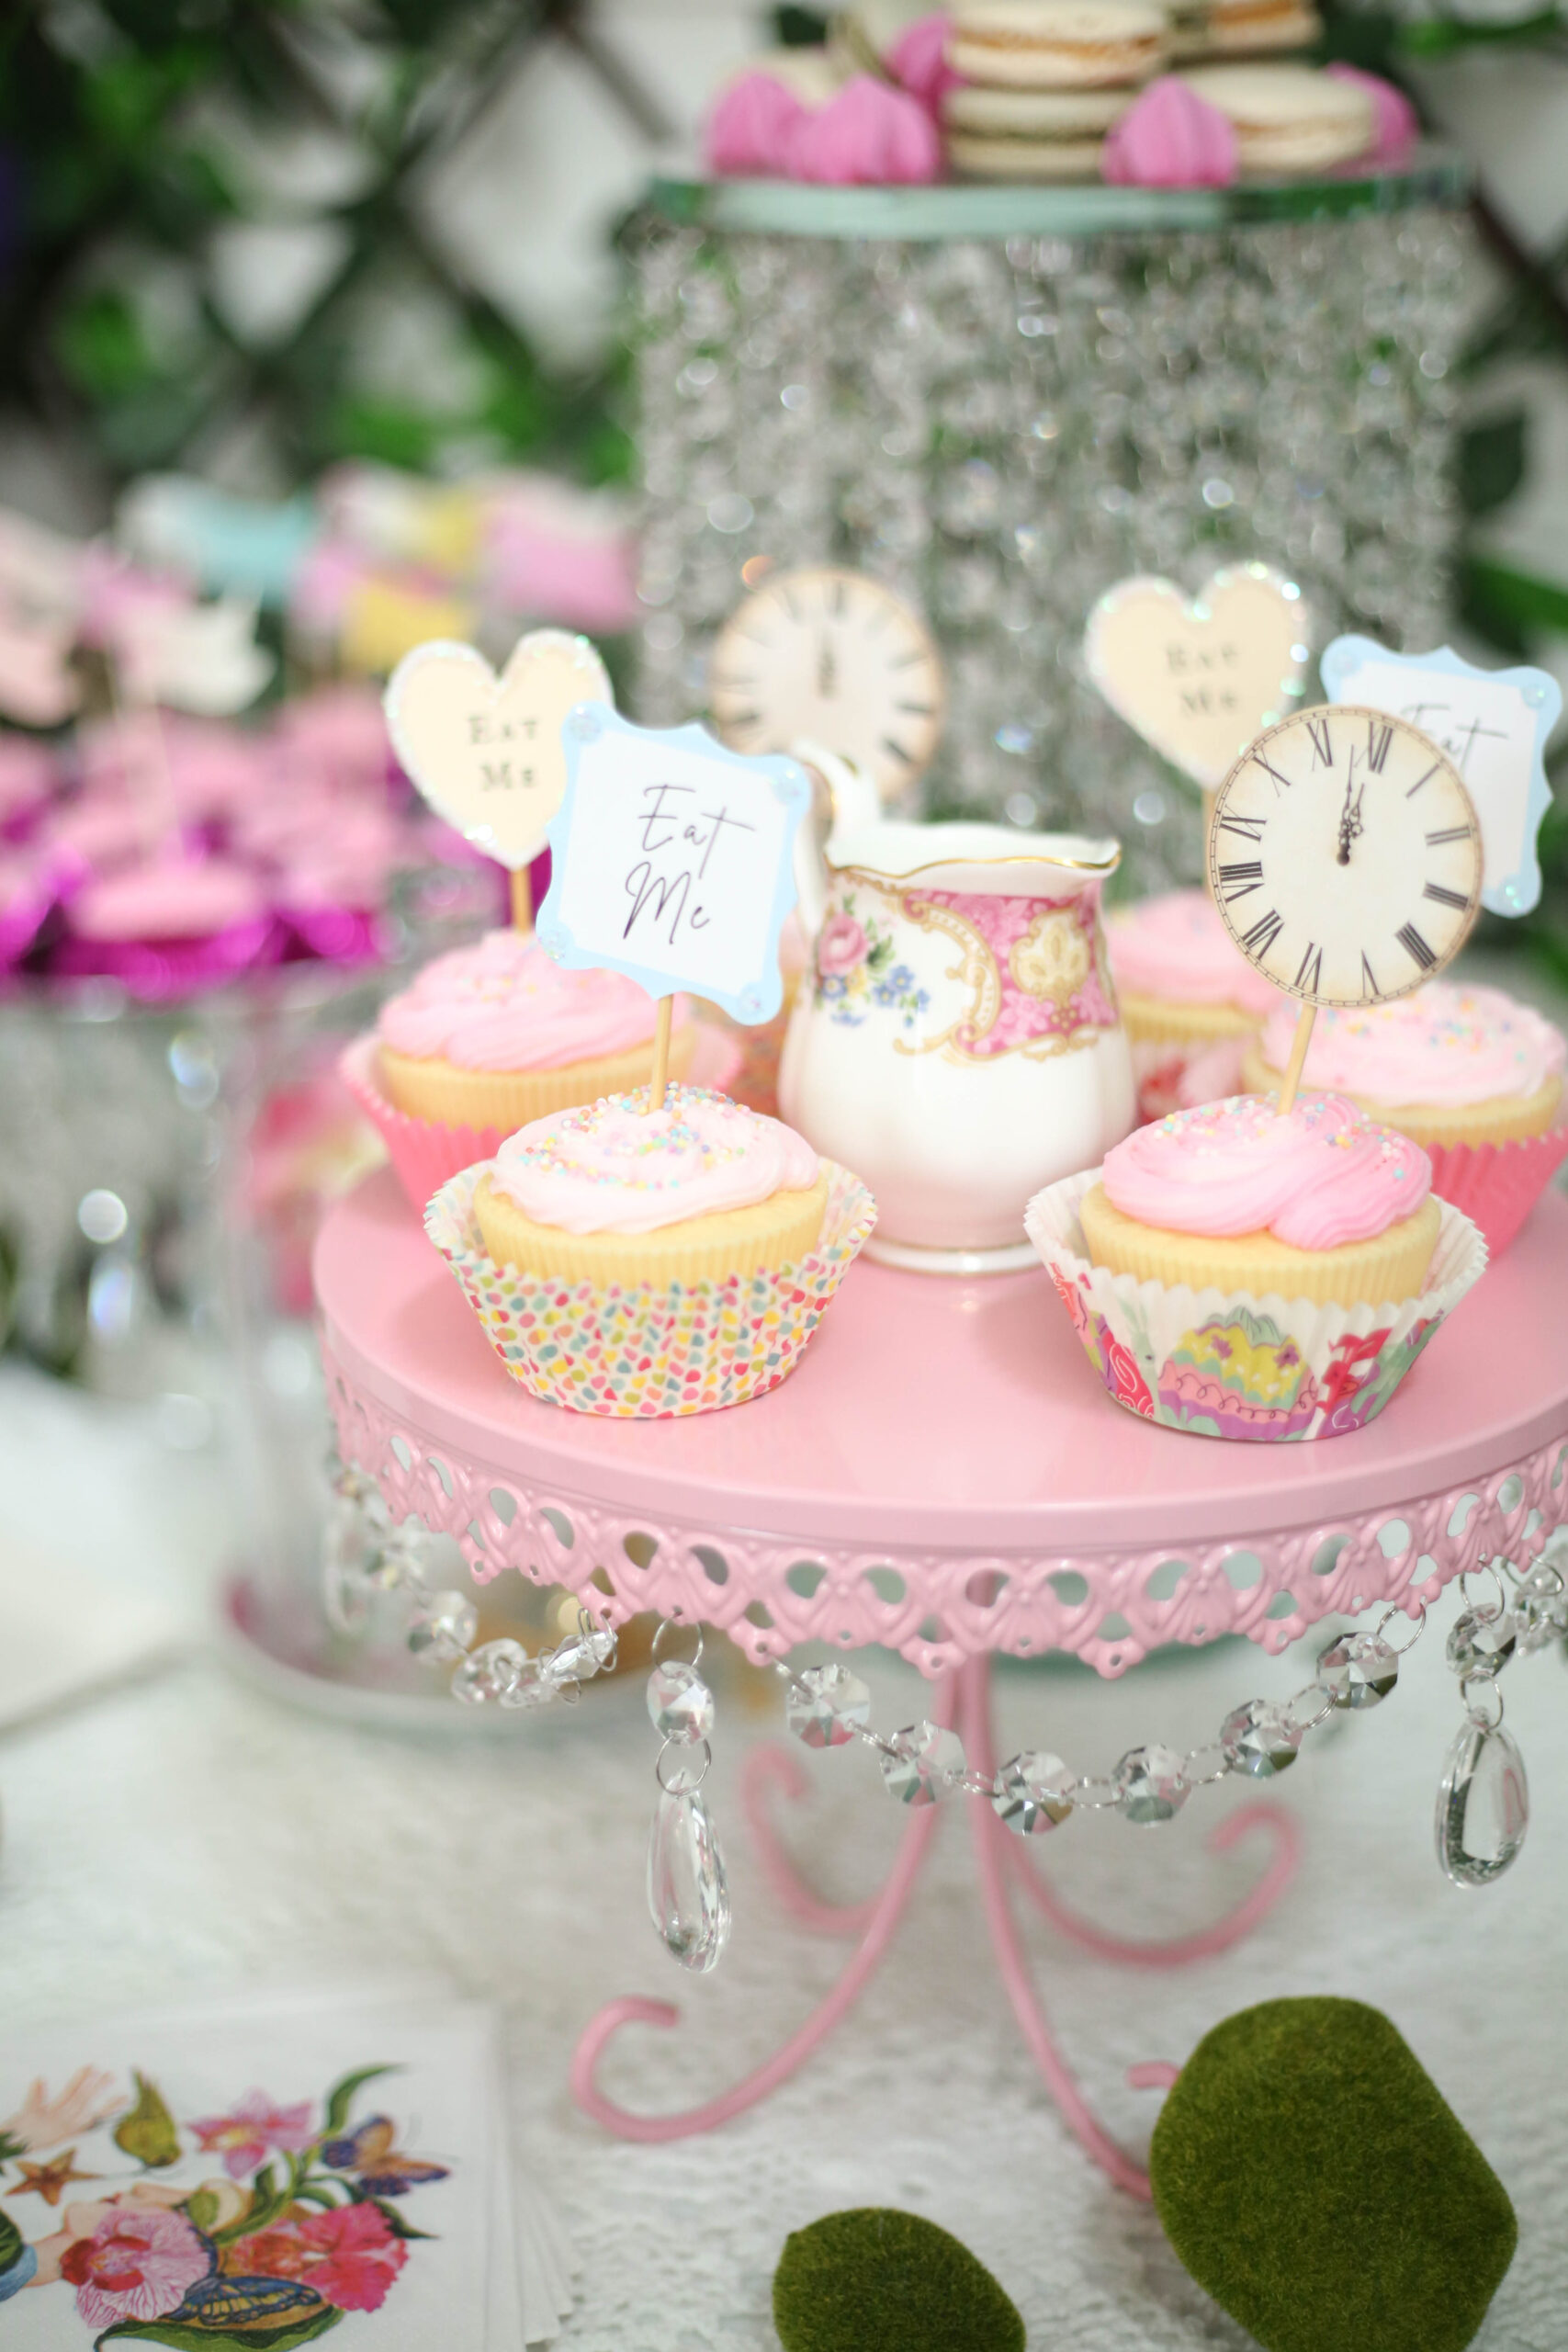 Easter cupcakes on a pink cake stand with crystals